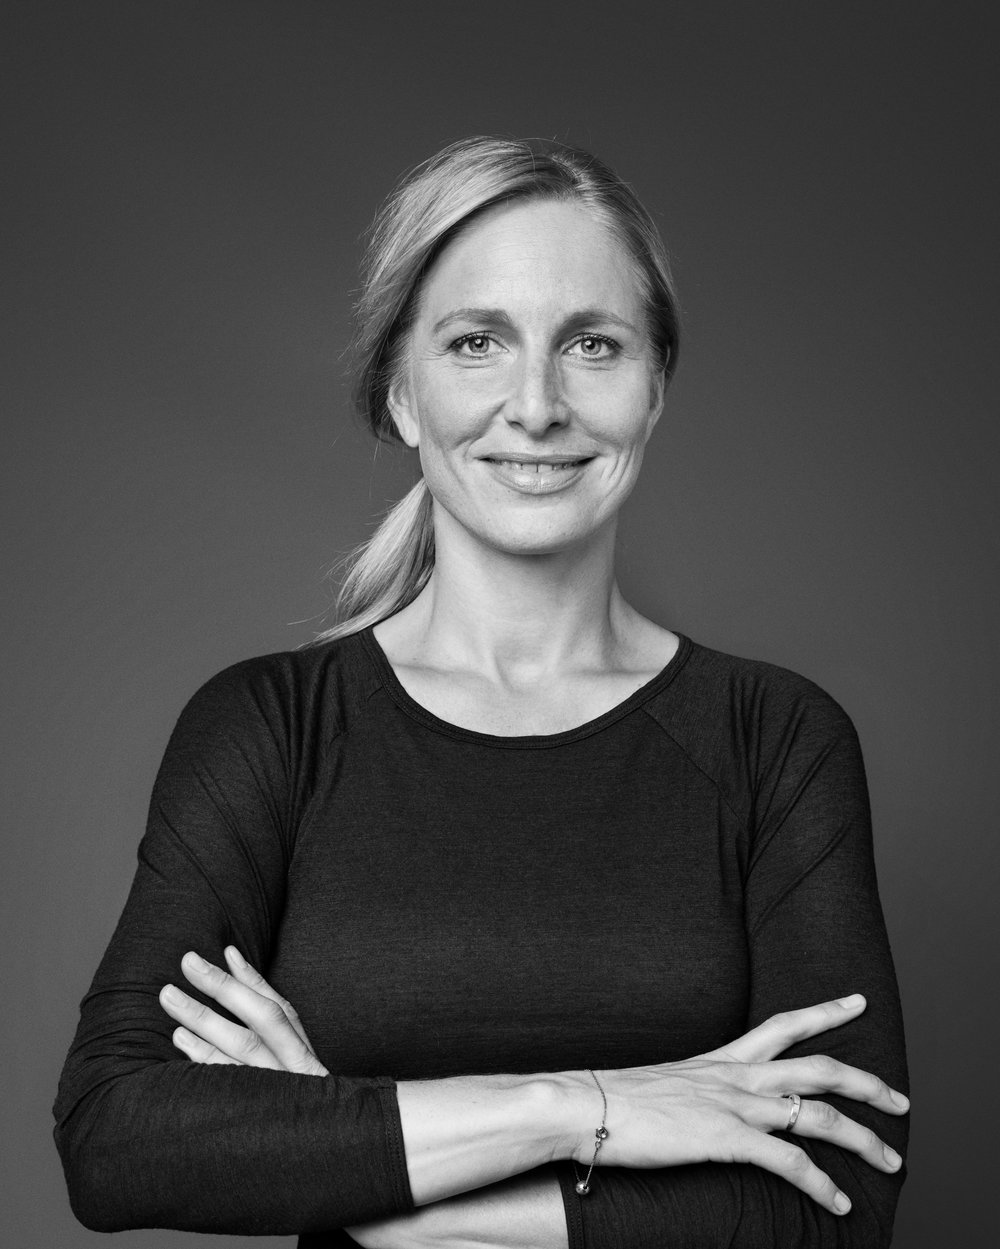 Lene Nordermoen, owner, founder and designer. (Photo: Kjell Ruben Strøm)